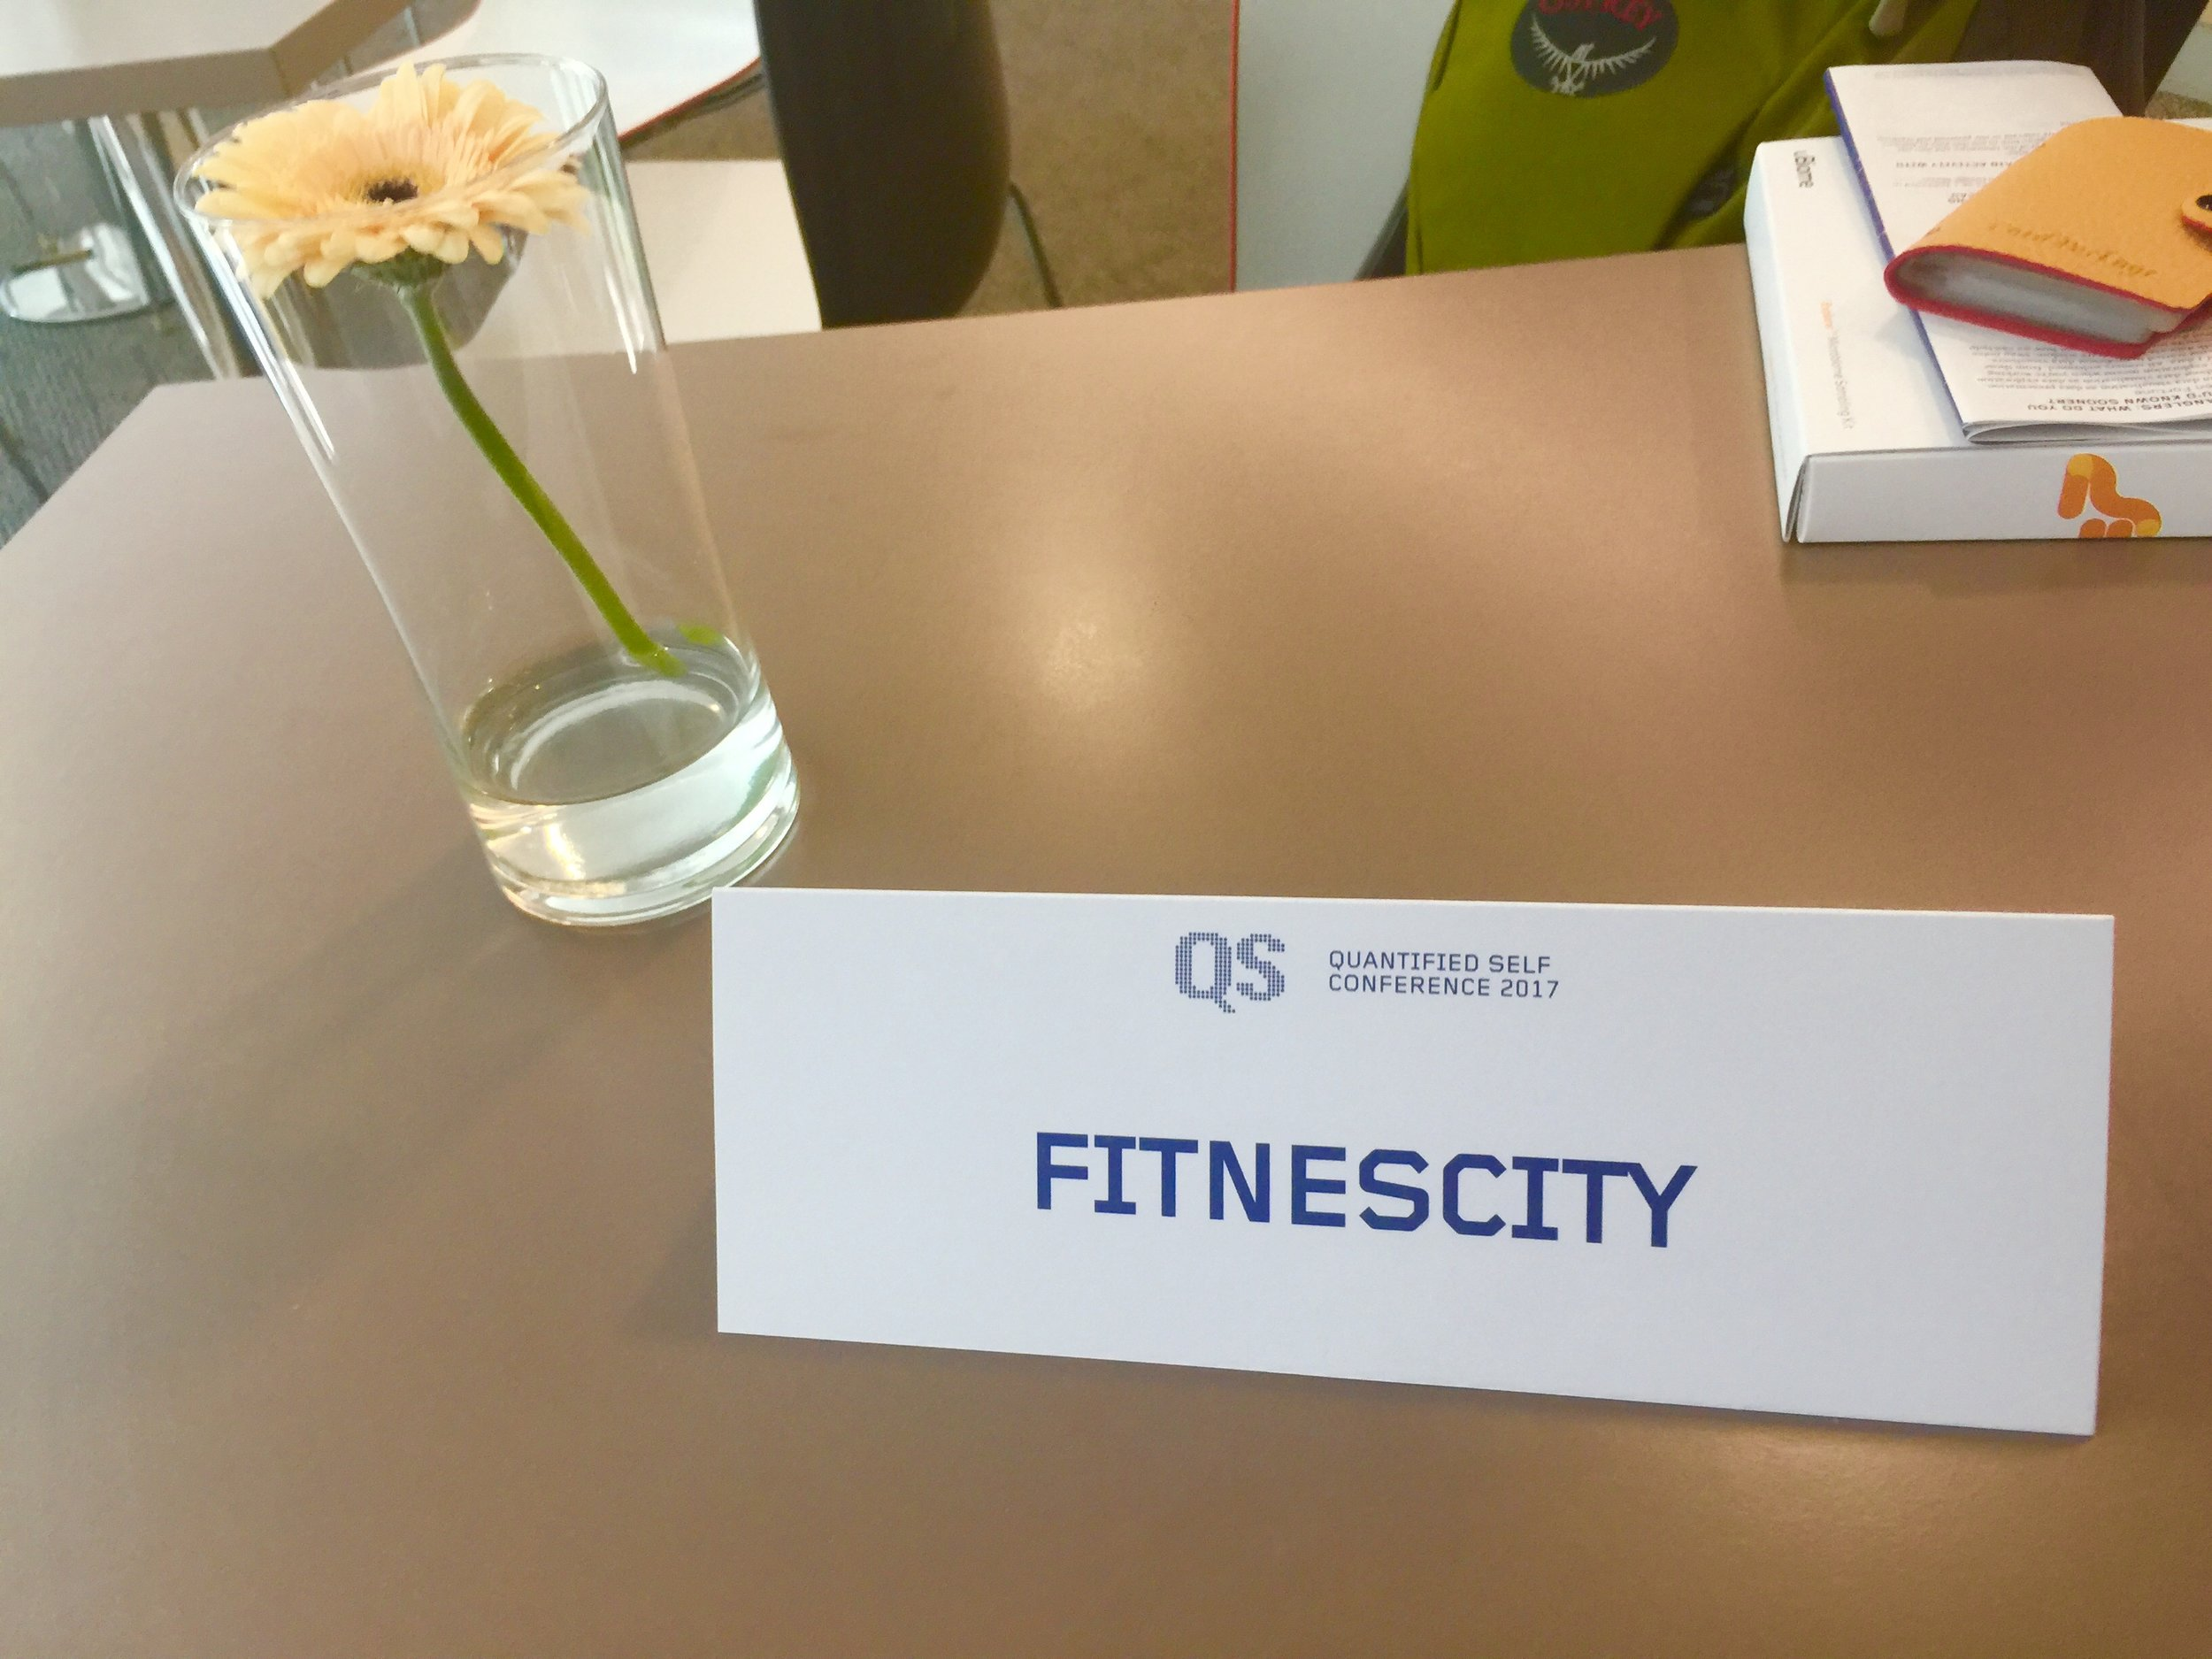 Fitnescity at the 2017 Quantified Self Conference